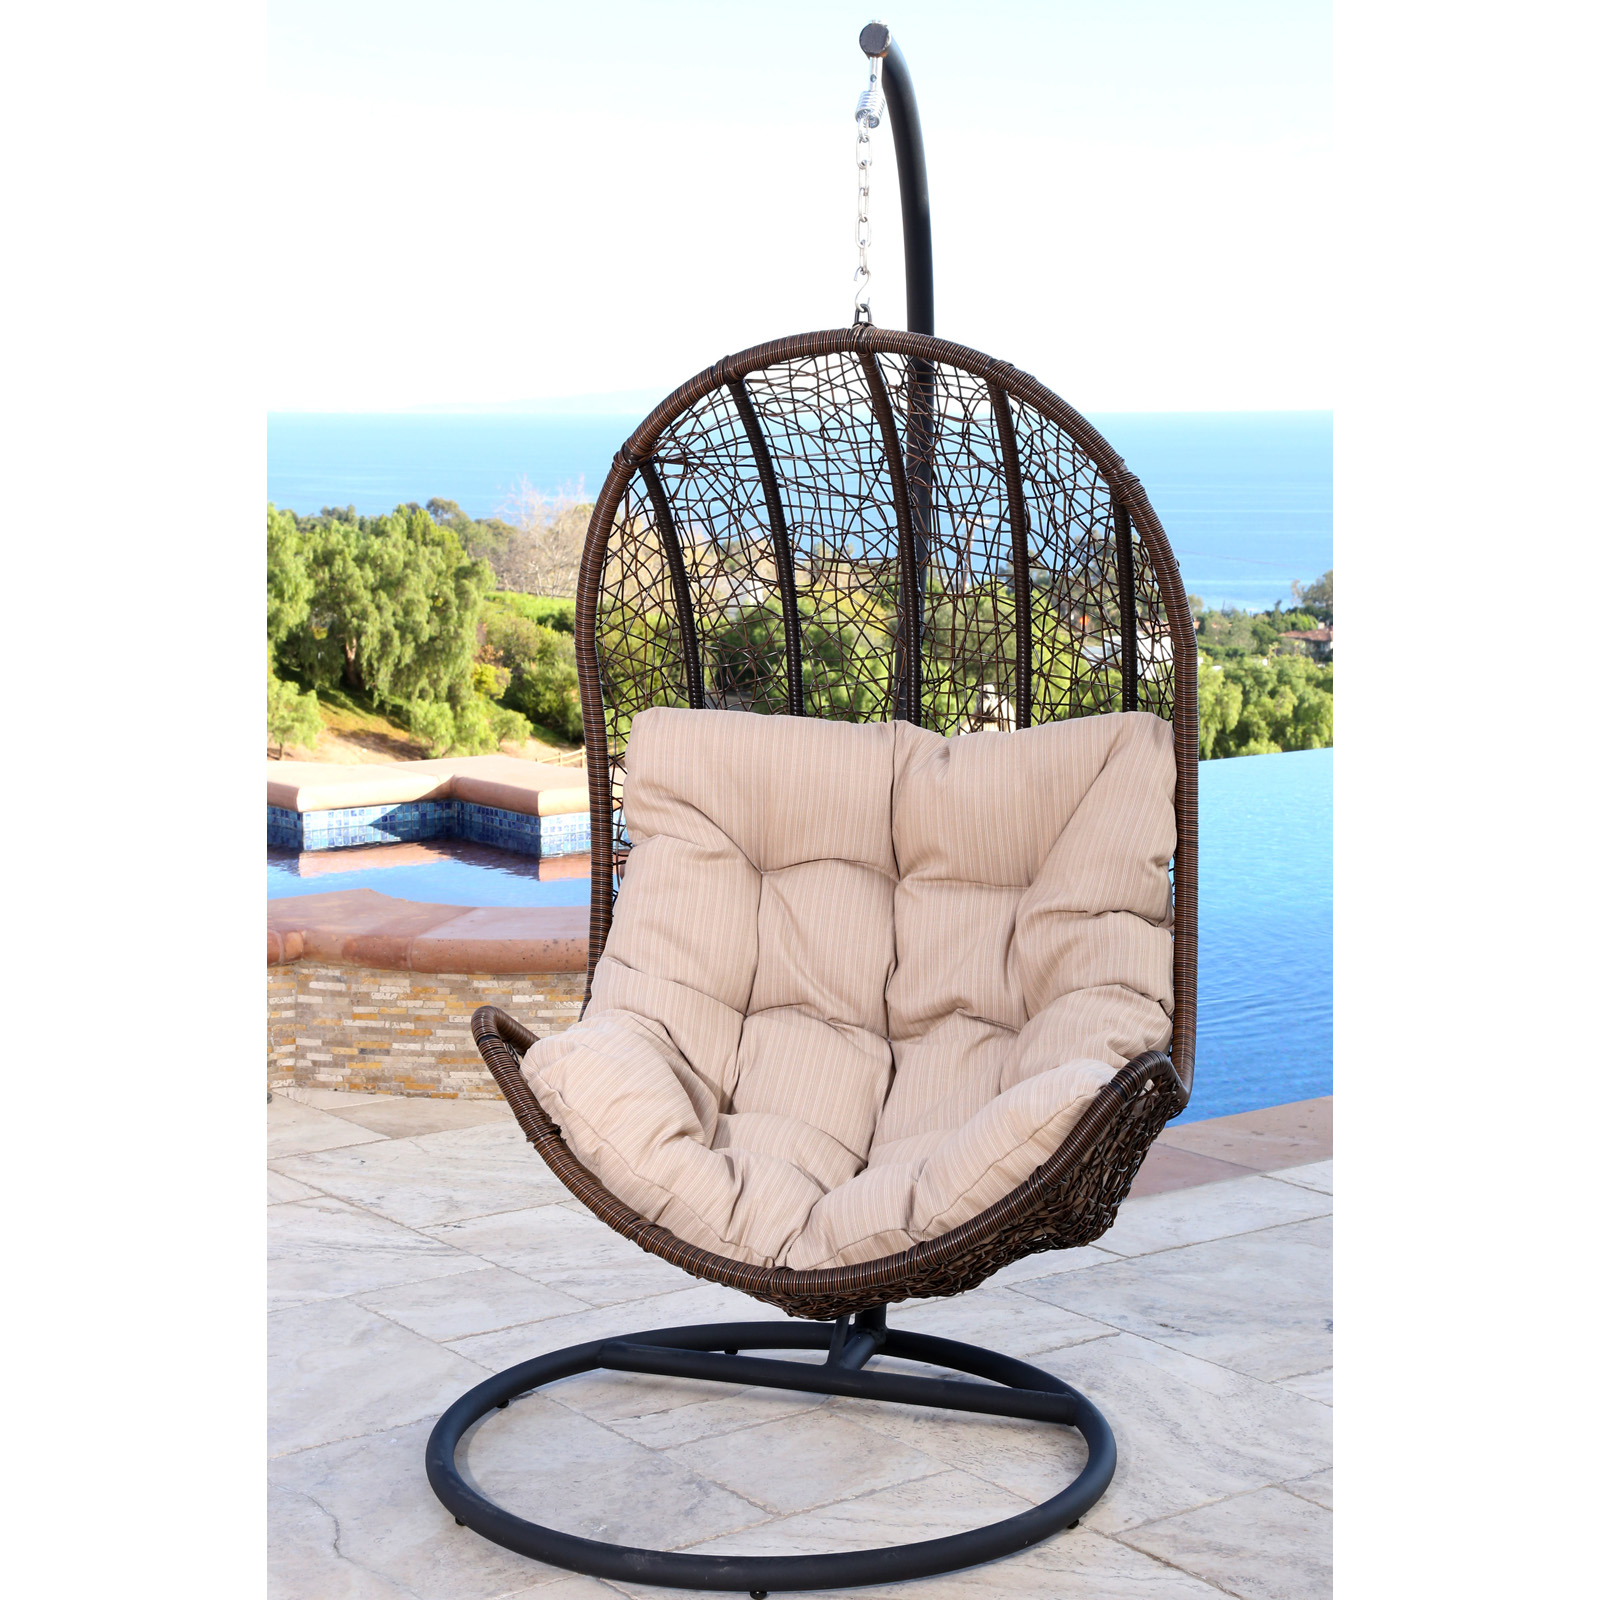 Egg Shaped Chairs Abbyson Living Cate Outdoor Wicker Egg Shaped Swing Chair